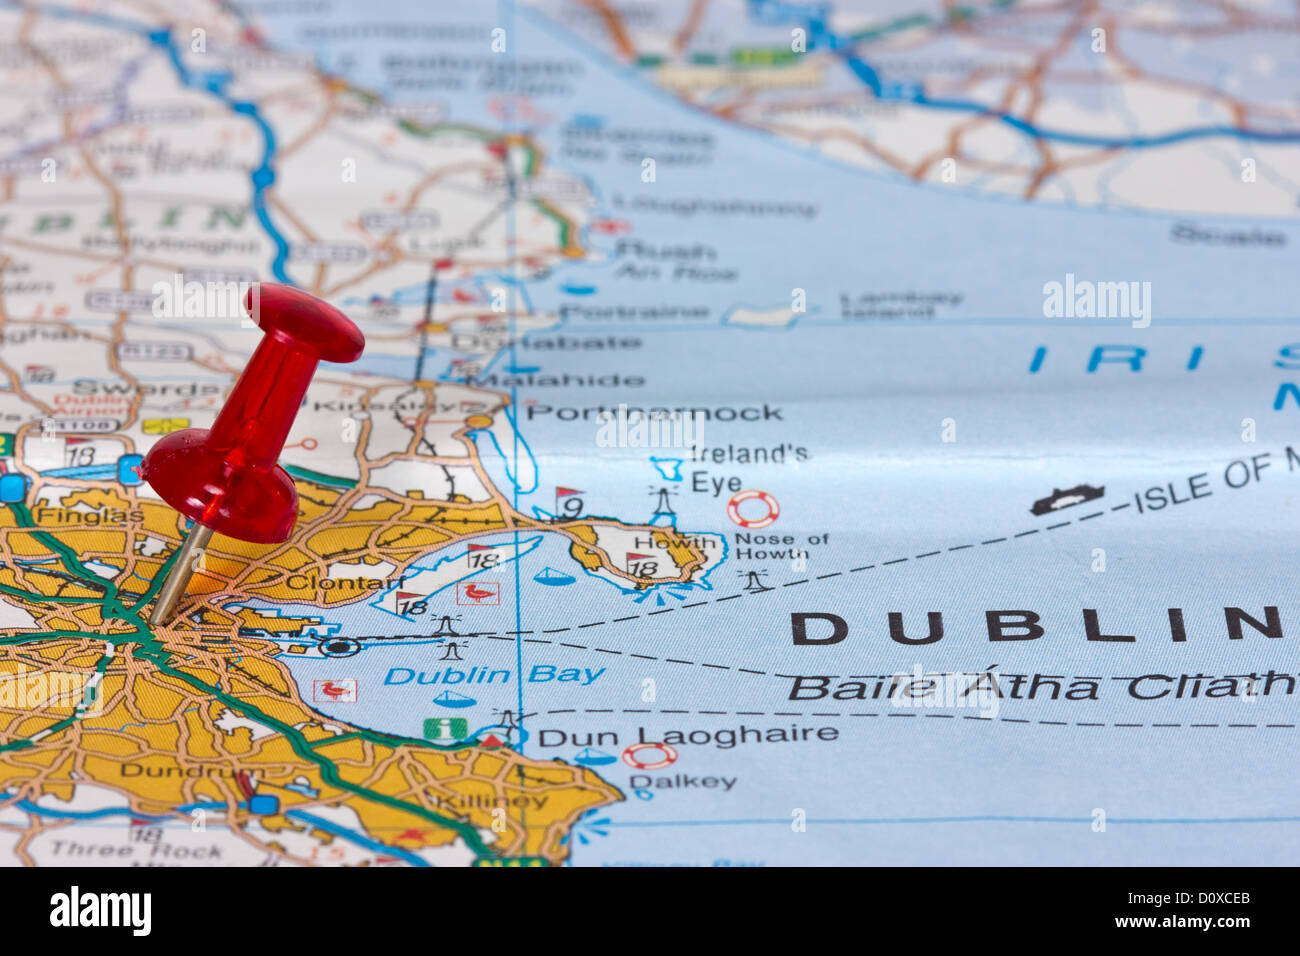 Map pin pointing dublin ireland stock photos map pin pointing pushpin pointing location of dublin on the map stock image gumiabroncs Gallery